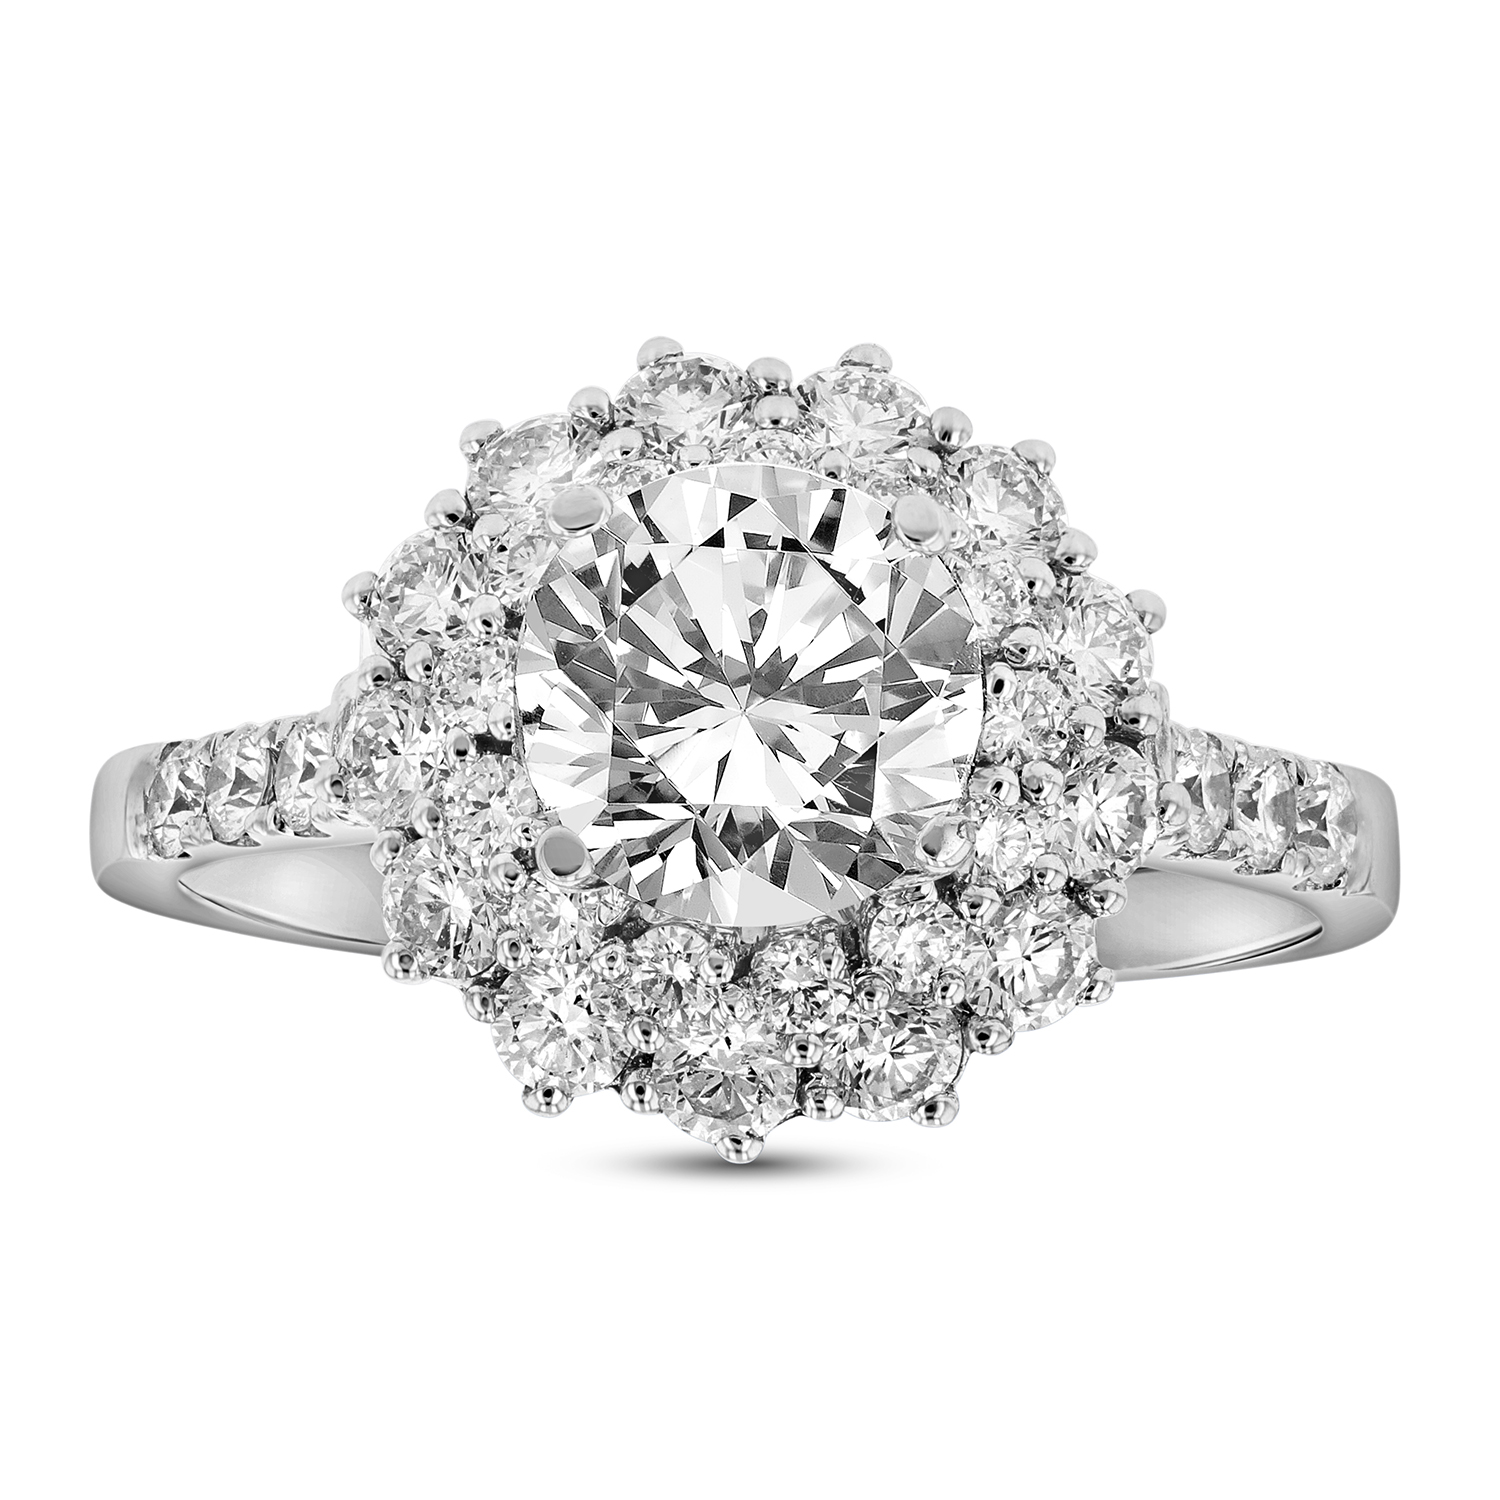 View 1.60ctw Diamond Engagement Ring in 18k white Gold